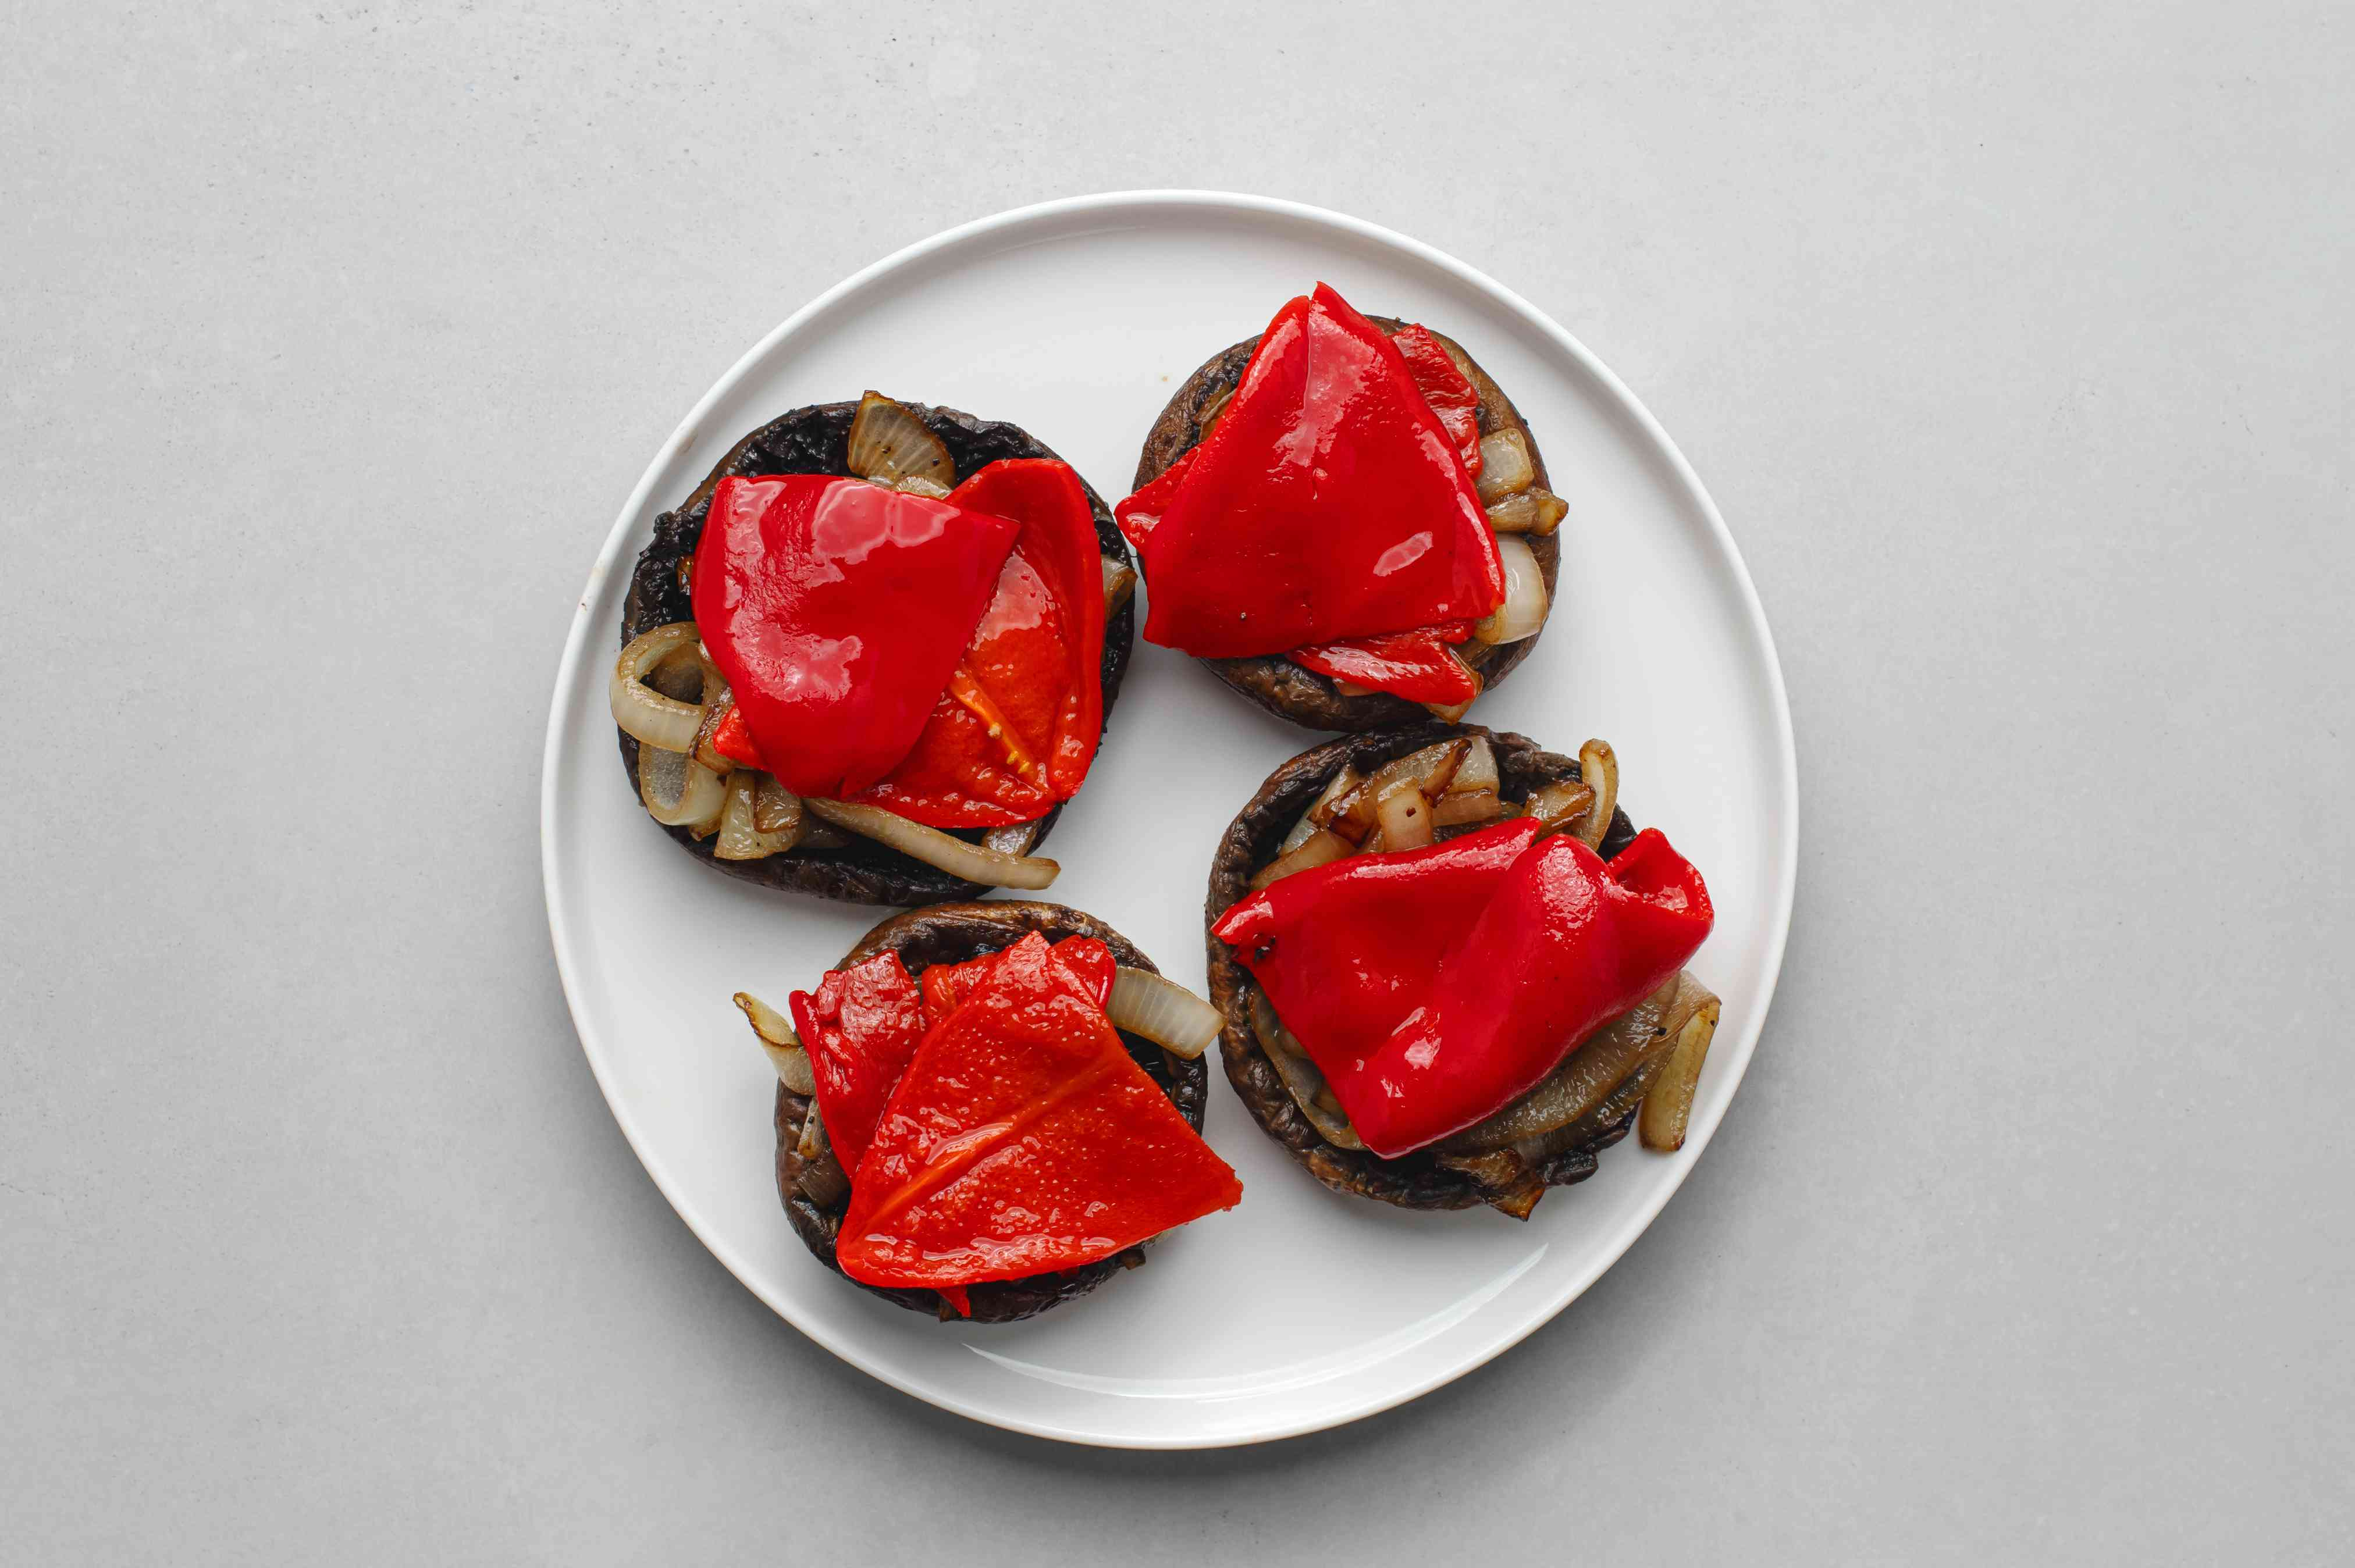 spoon the onions and roasted red peppers into the grilled mushroom cavities